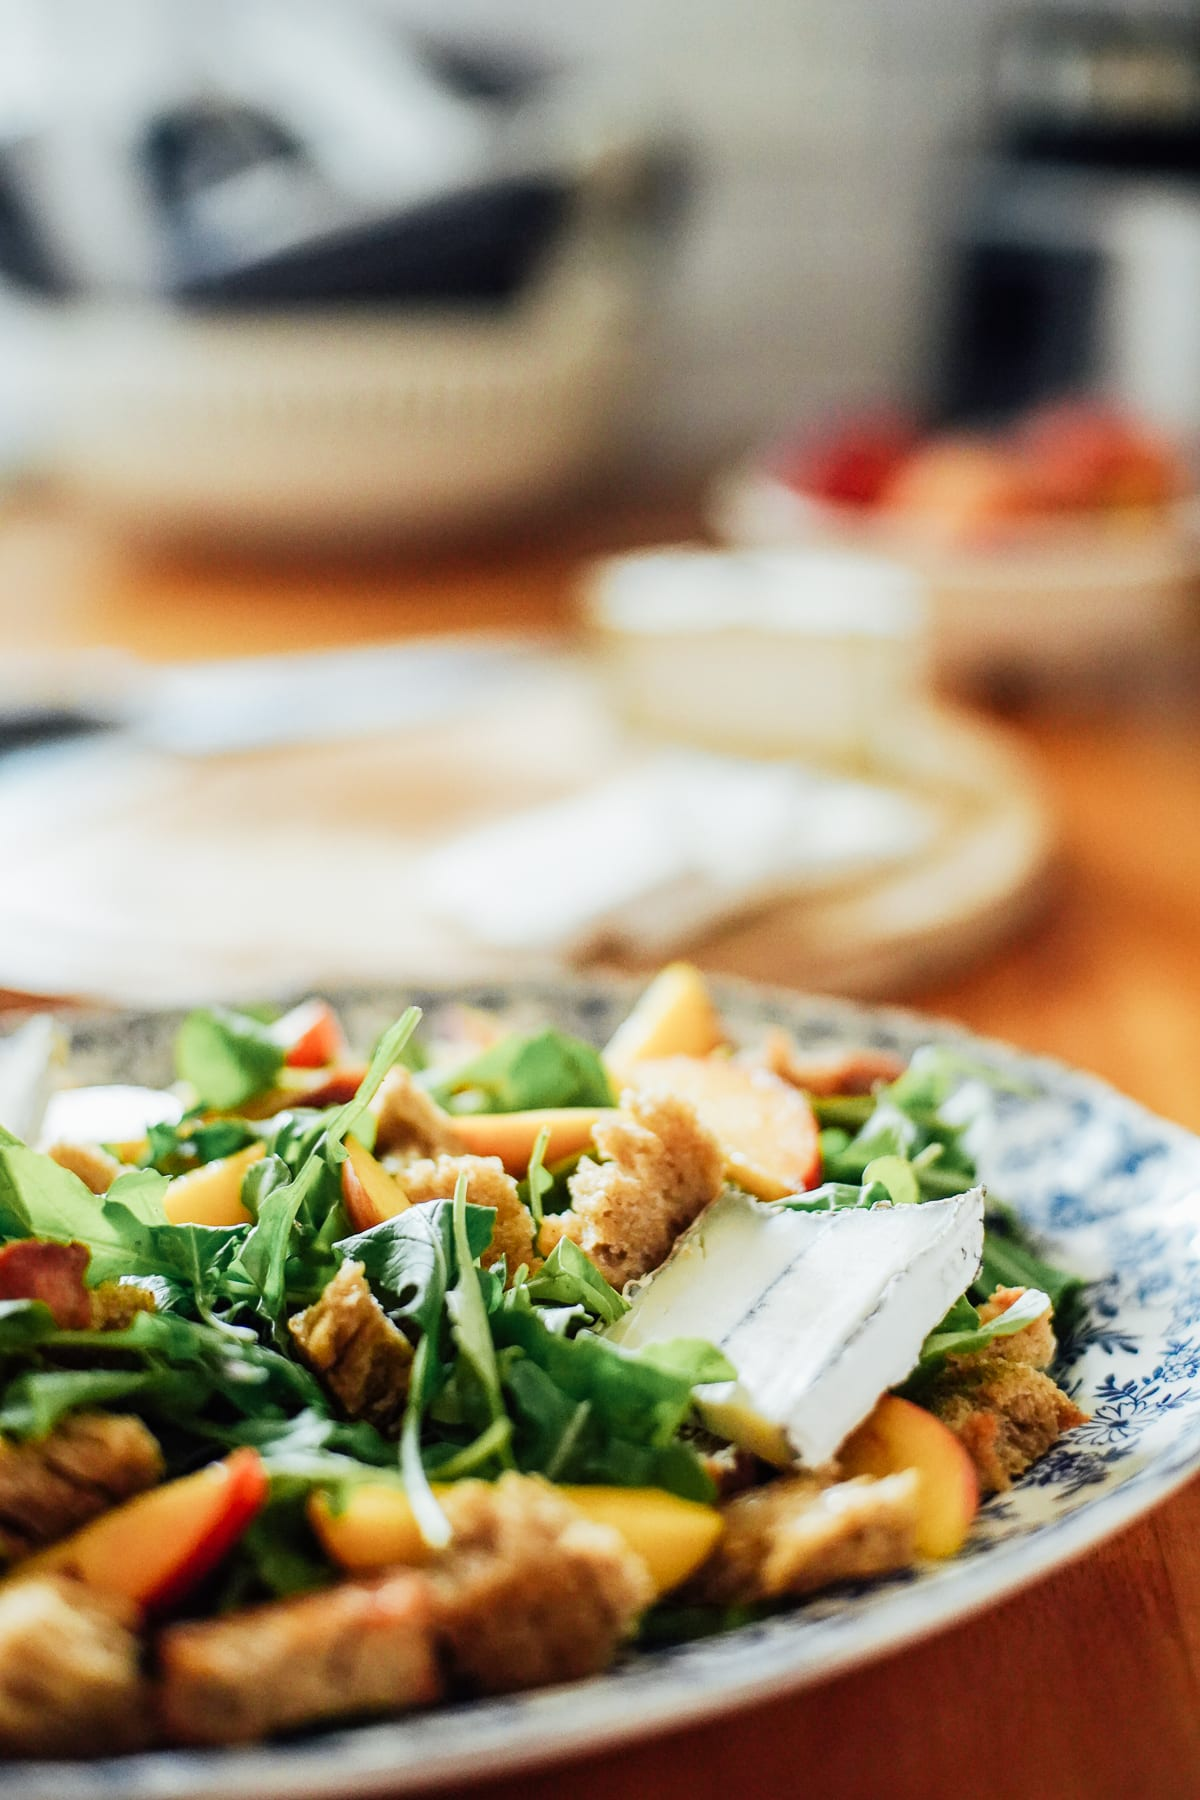 Arugula-Peach Salad with Lemon Vinaigrette